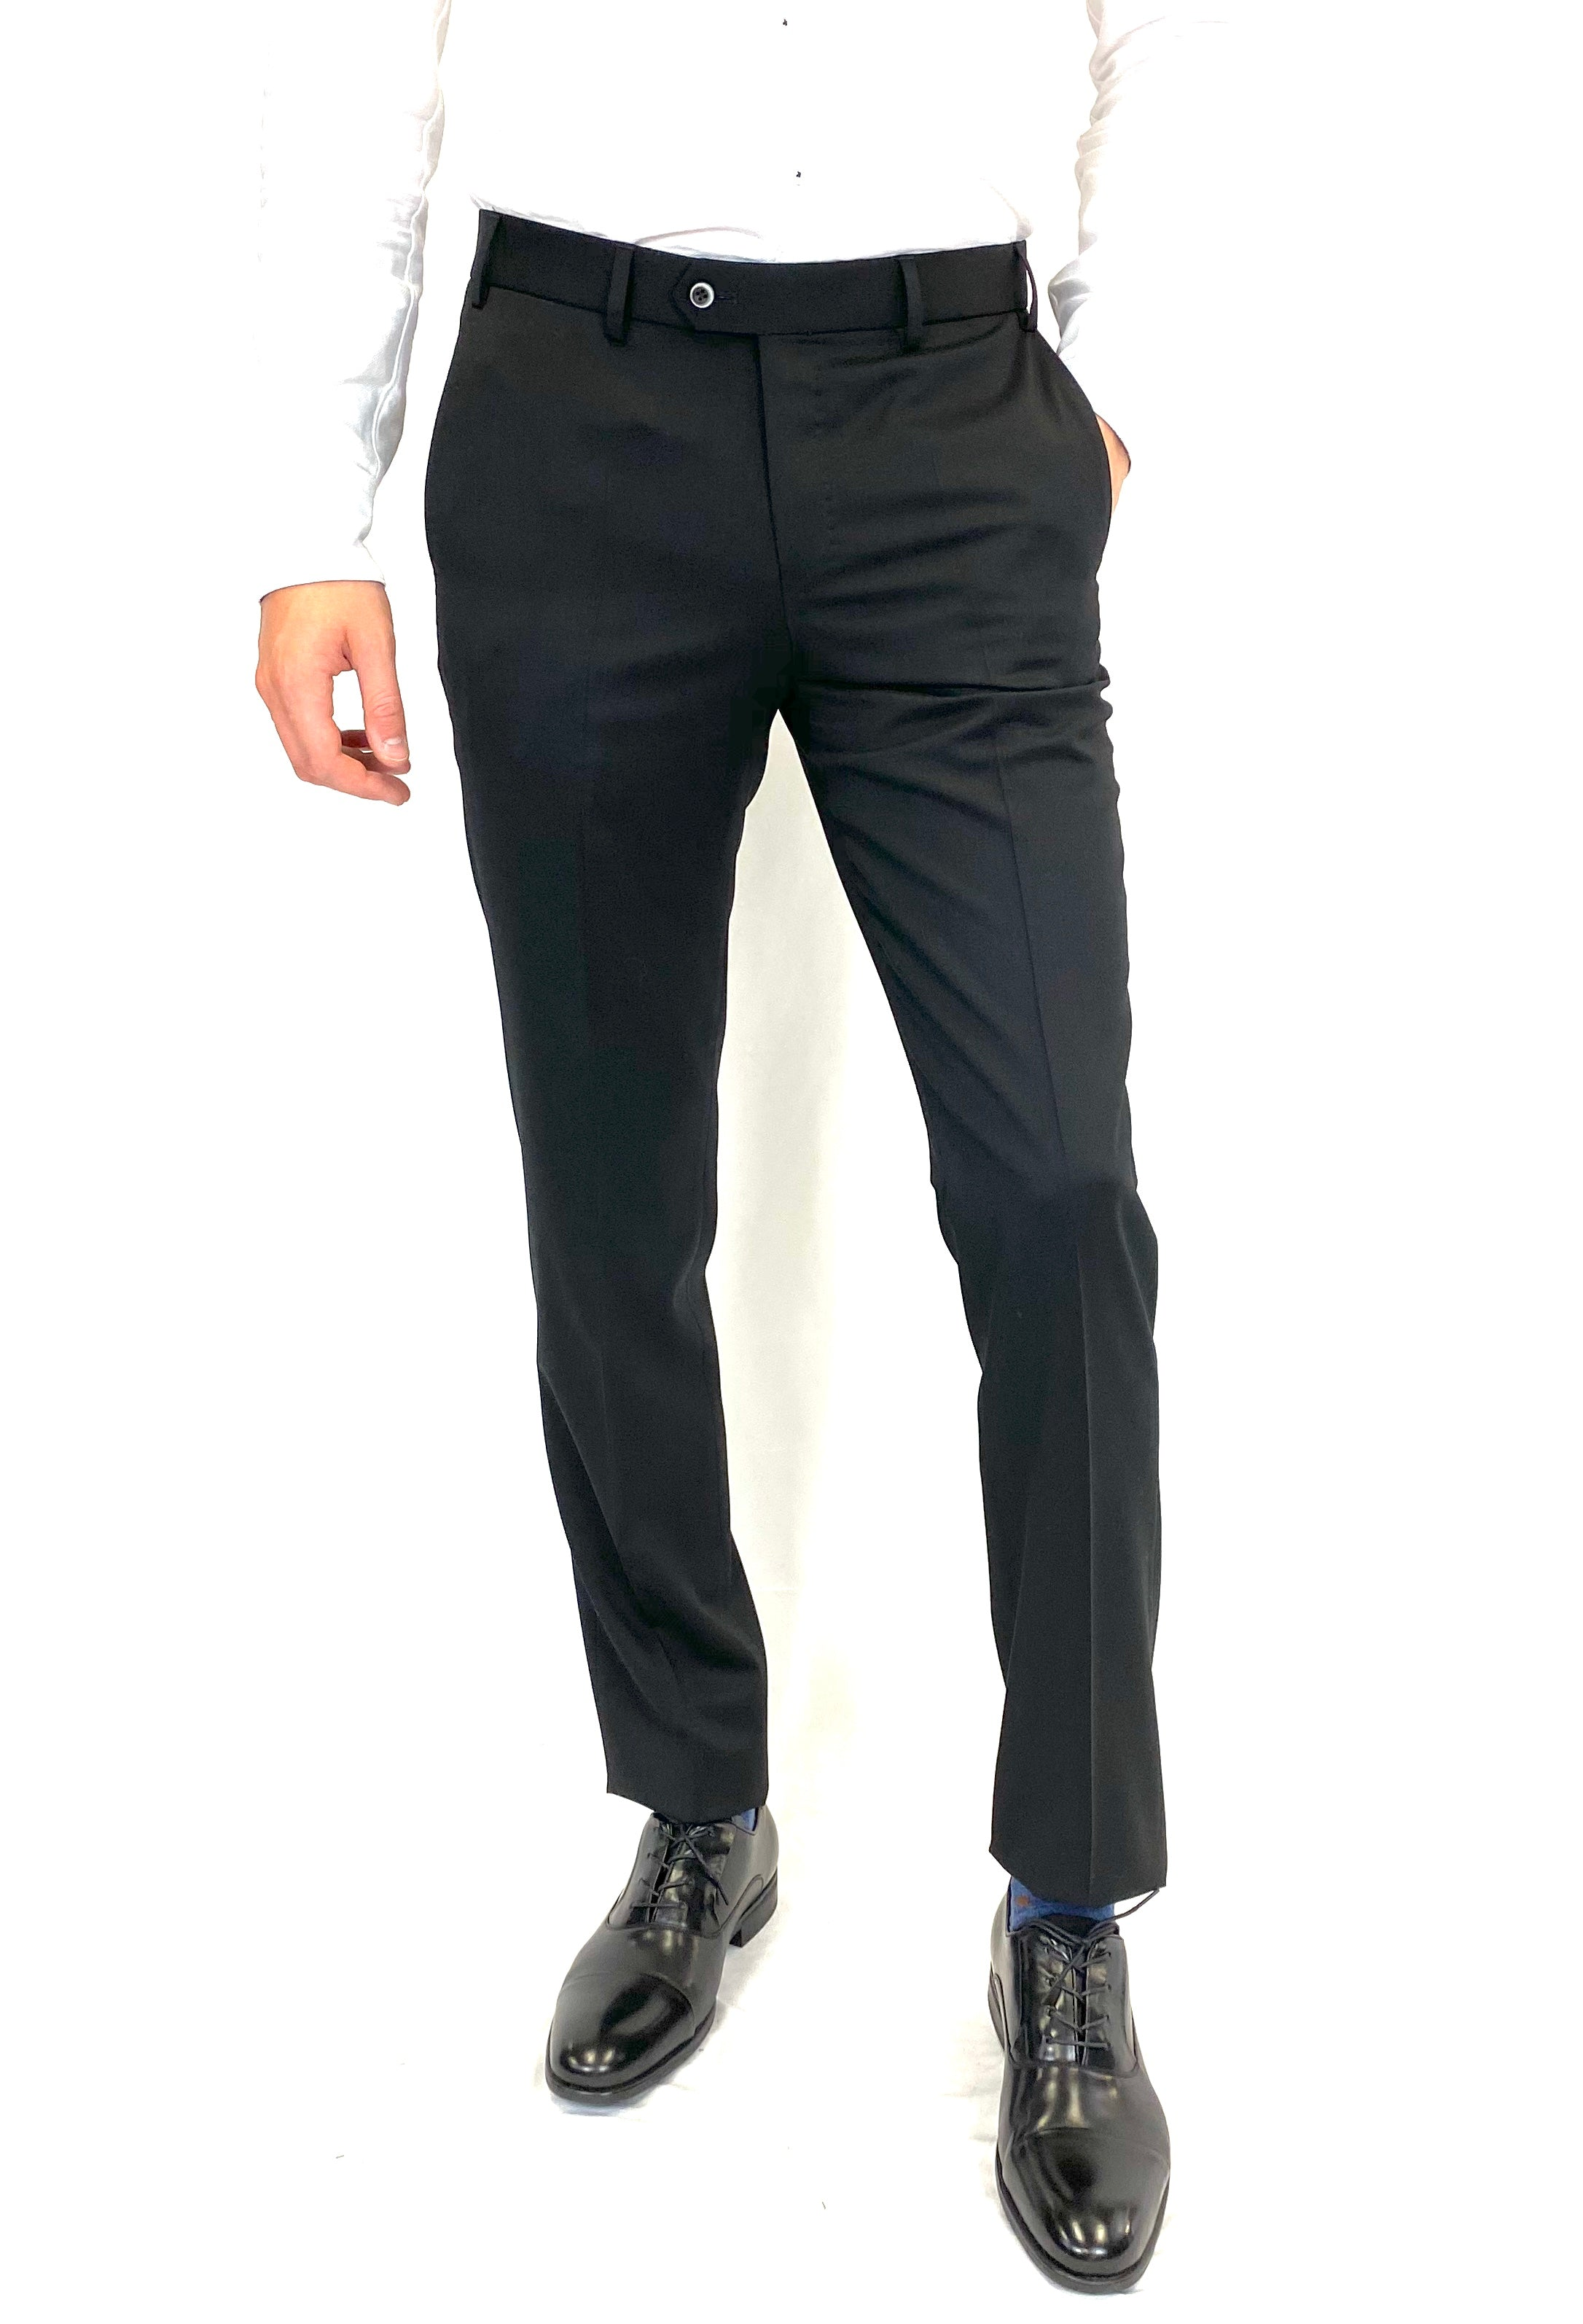 Hiltl Contemporary Fit Dress Pant in Black